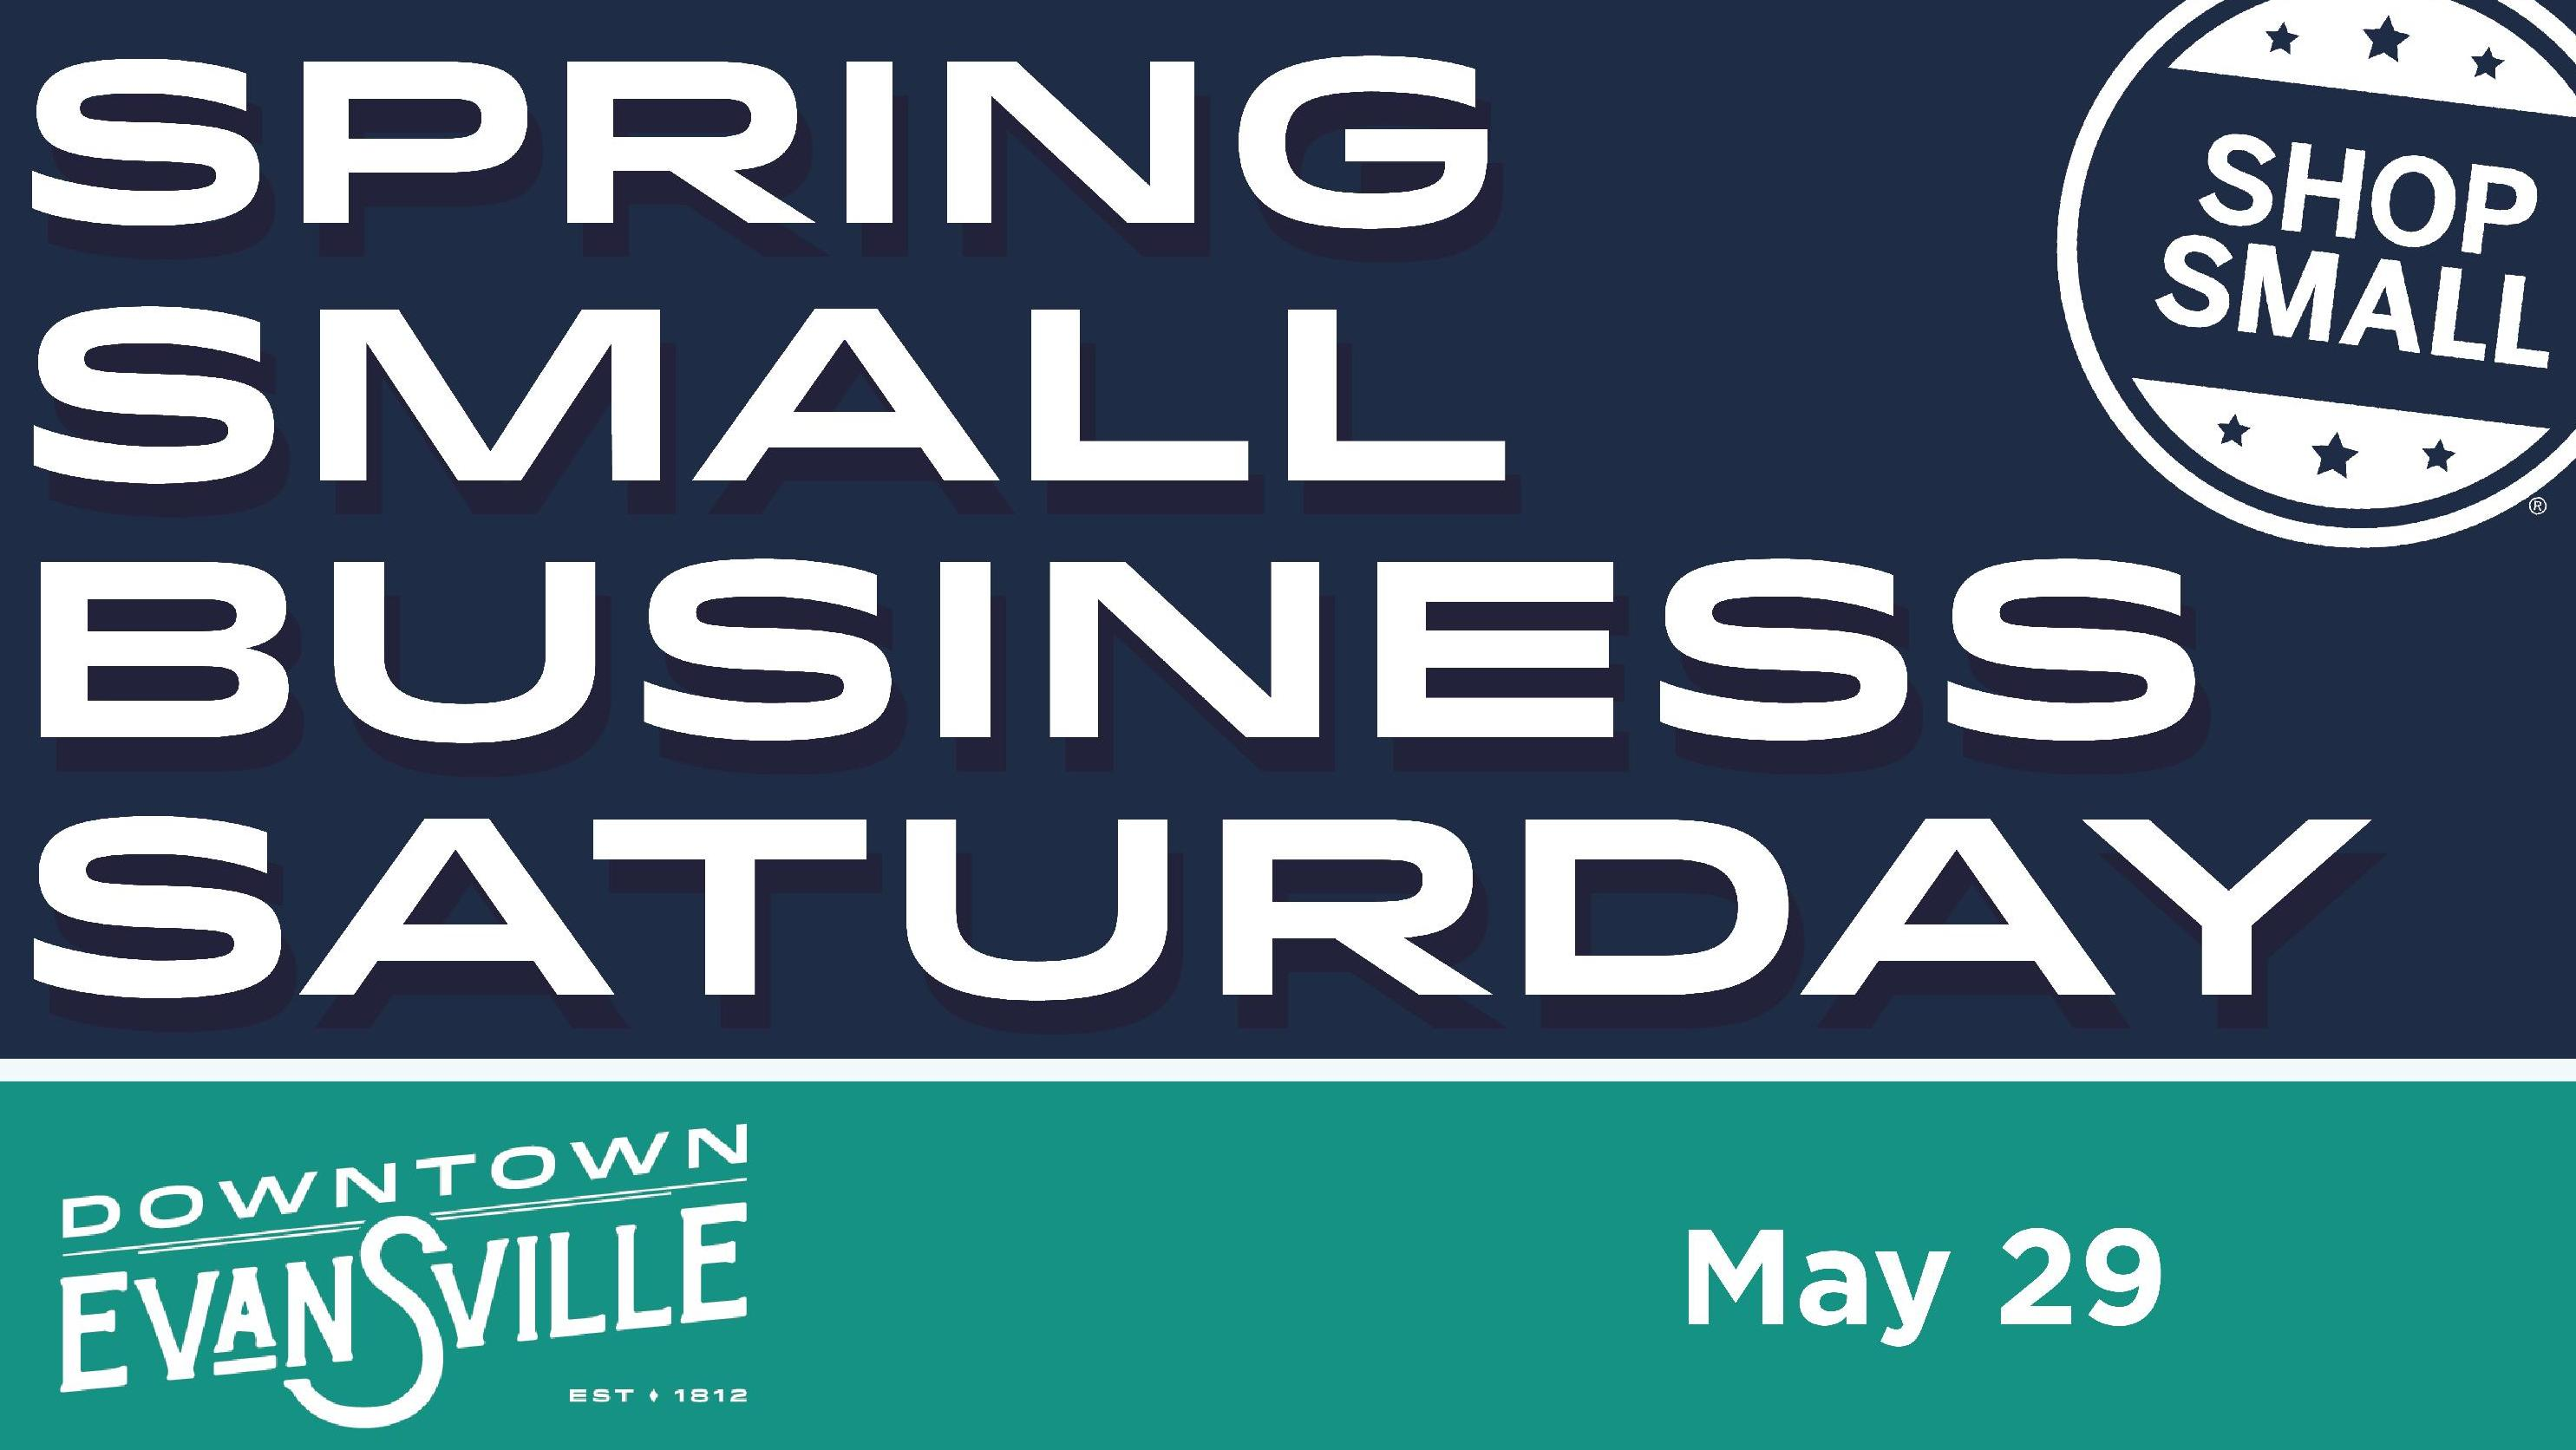 2021 Evansville Spring Small Business Saturday